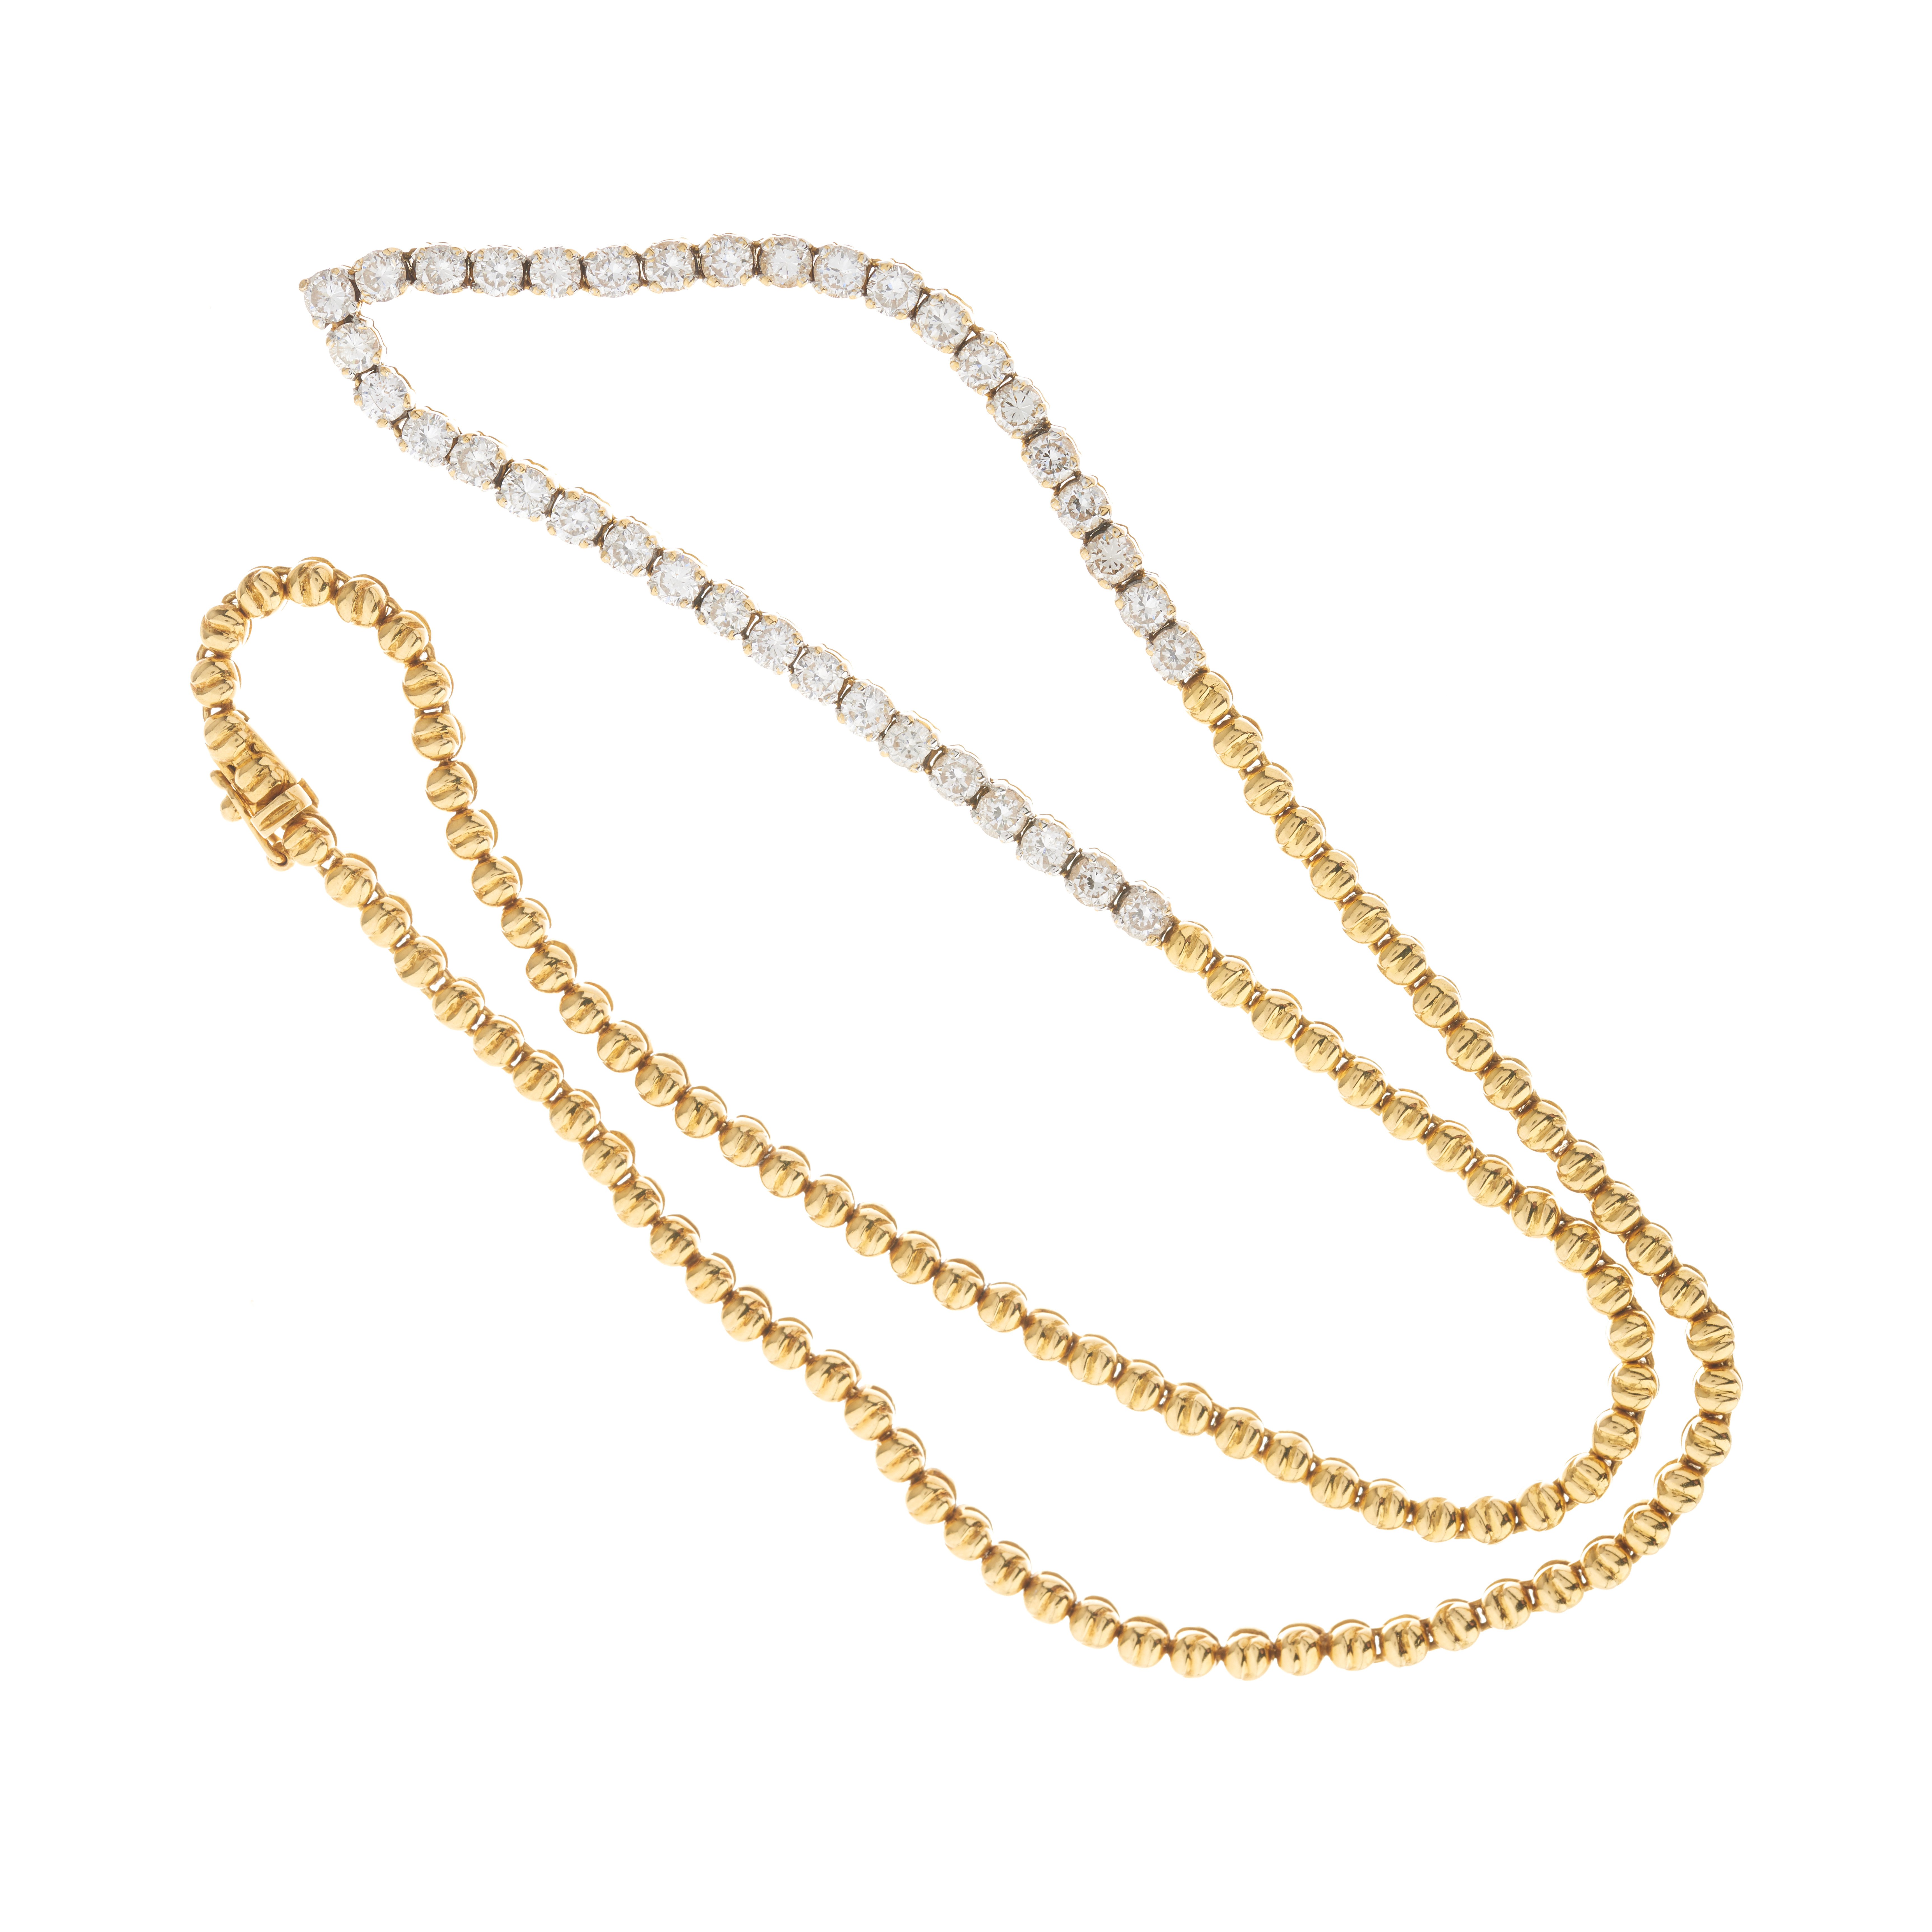 An 18ct gold diamond line necklace - Image 3 of 3